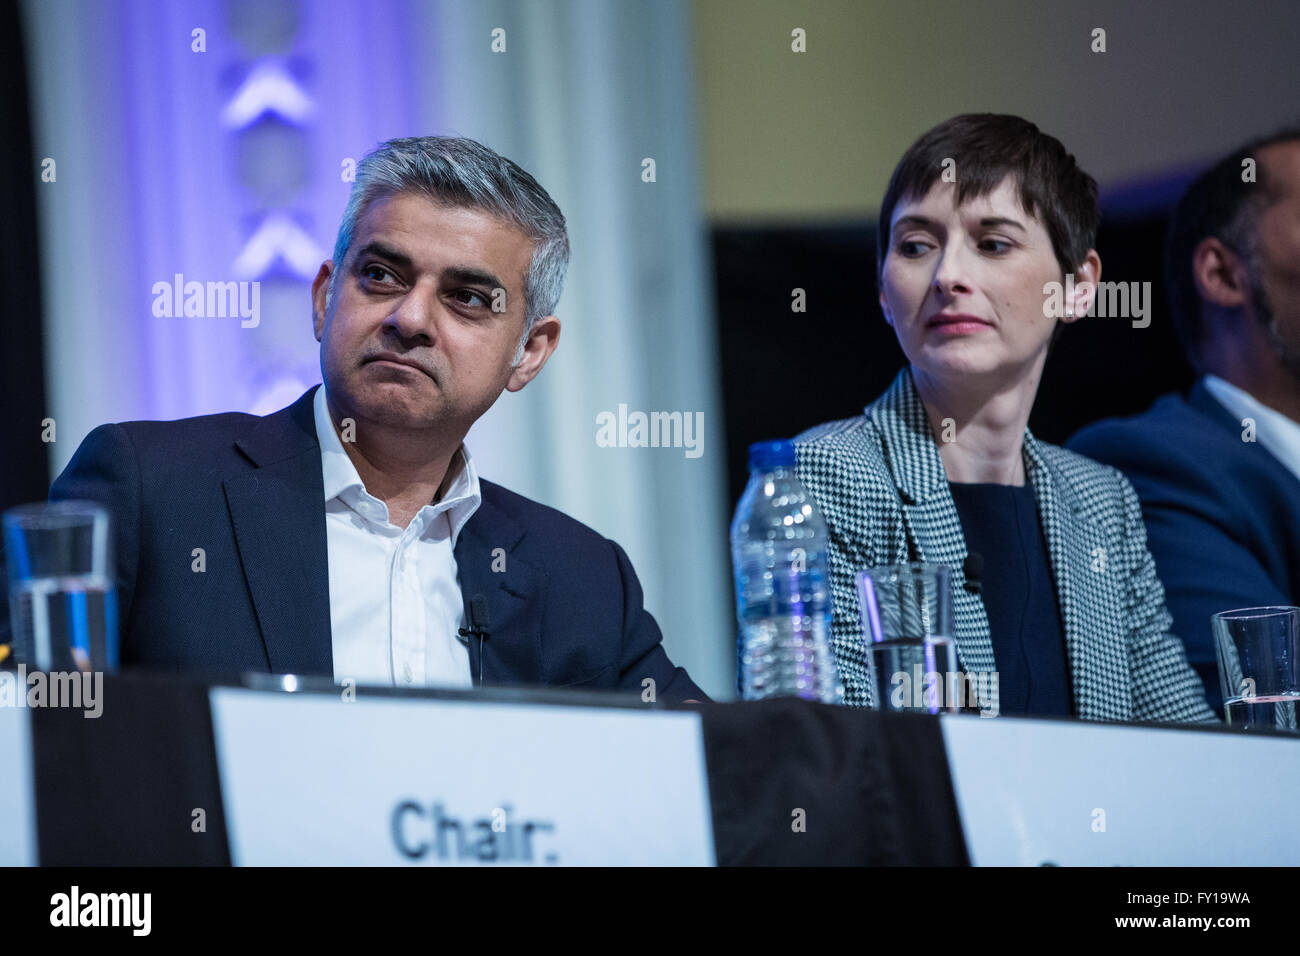 London, UK. 19th April, 2016. Caroline Pidgeon, Liberal Democrat candidate, glances at Sadiq Khan, Labour candidate, - Stock Image